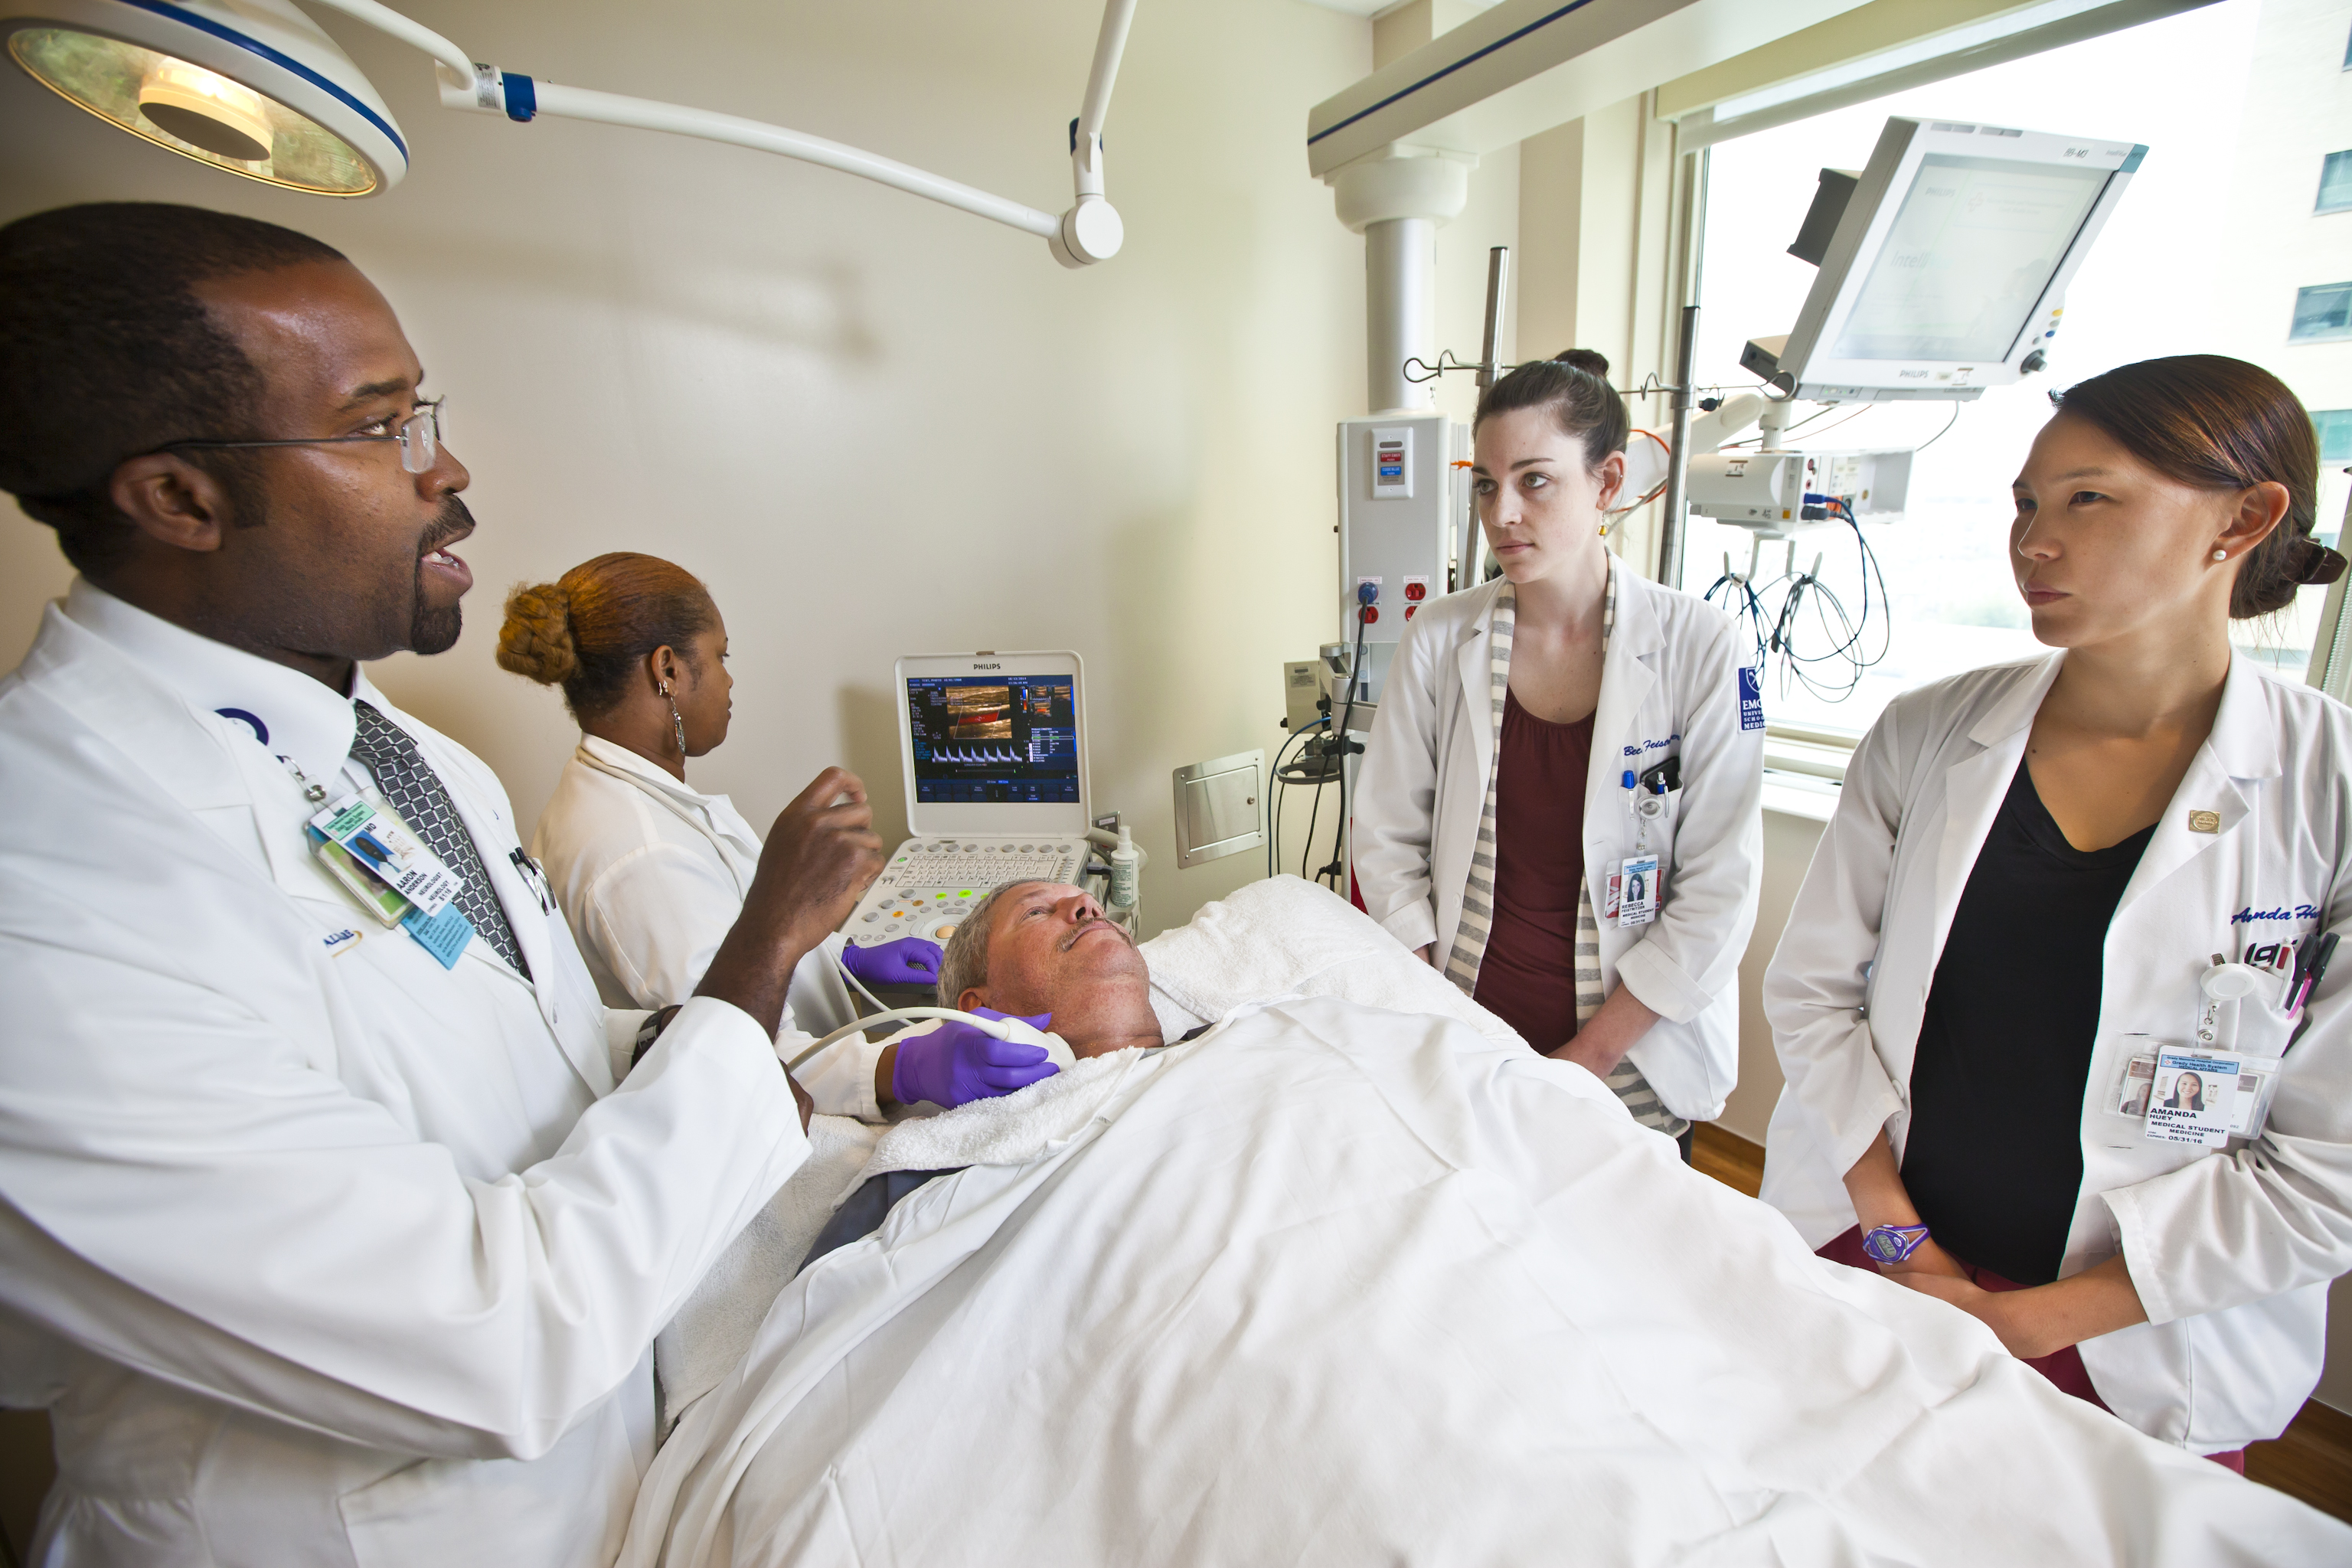 Instructor and students at bedside with patient